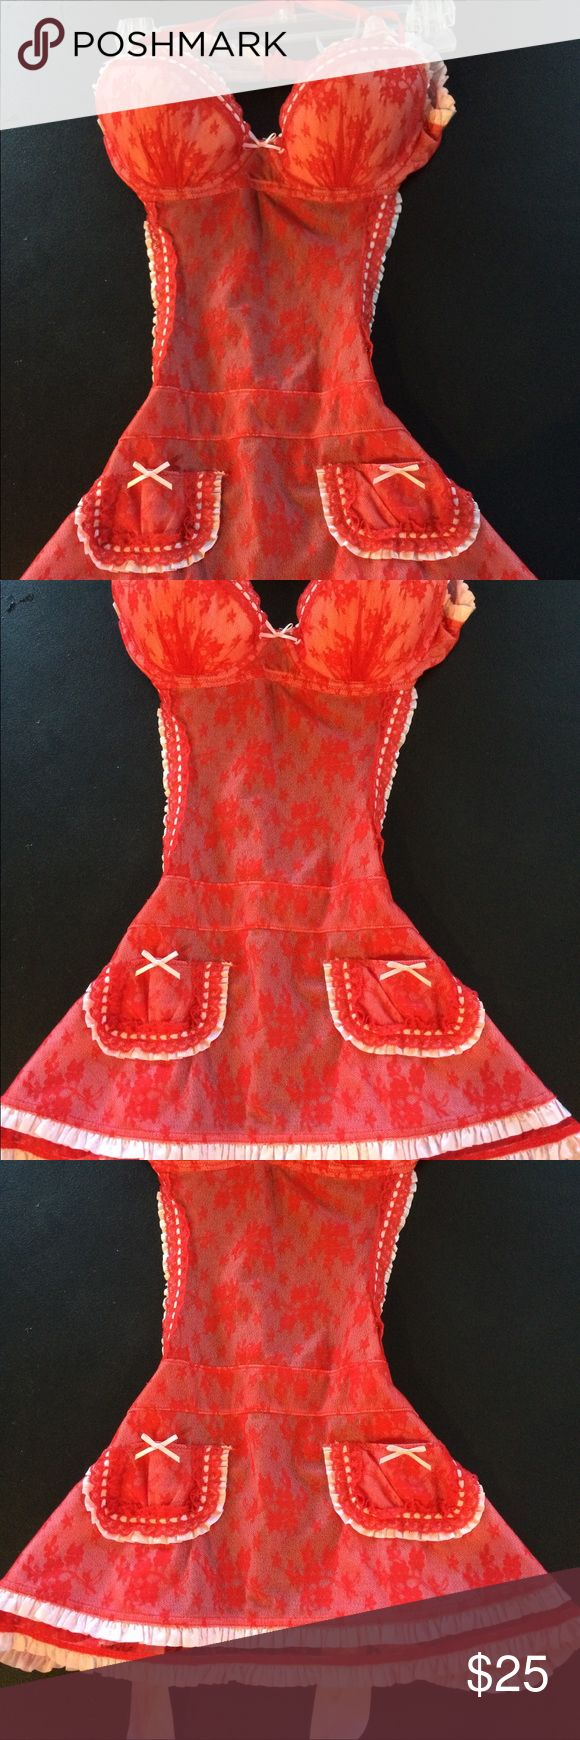 Victoria's Secret Red lace french maid lingerie Victoria's Secret 36B red lace french maids lingerie with ribbon tie in back. The chest is too big for me. Great condition Victoria's Secret Intimates & Sleepwear